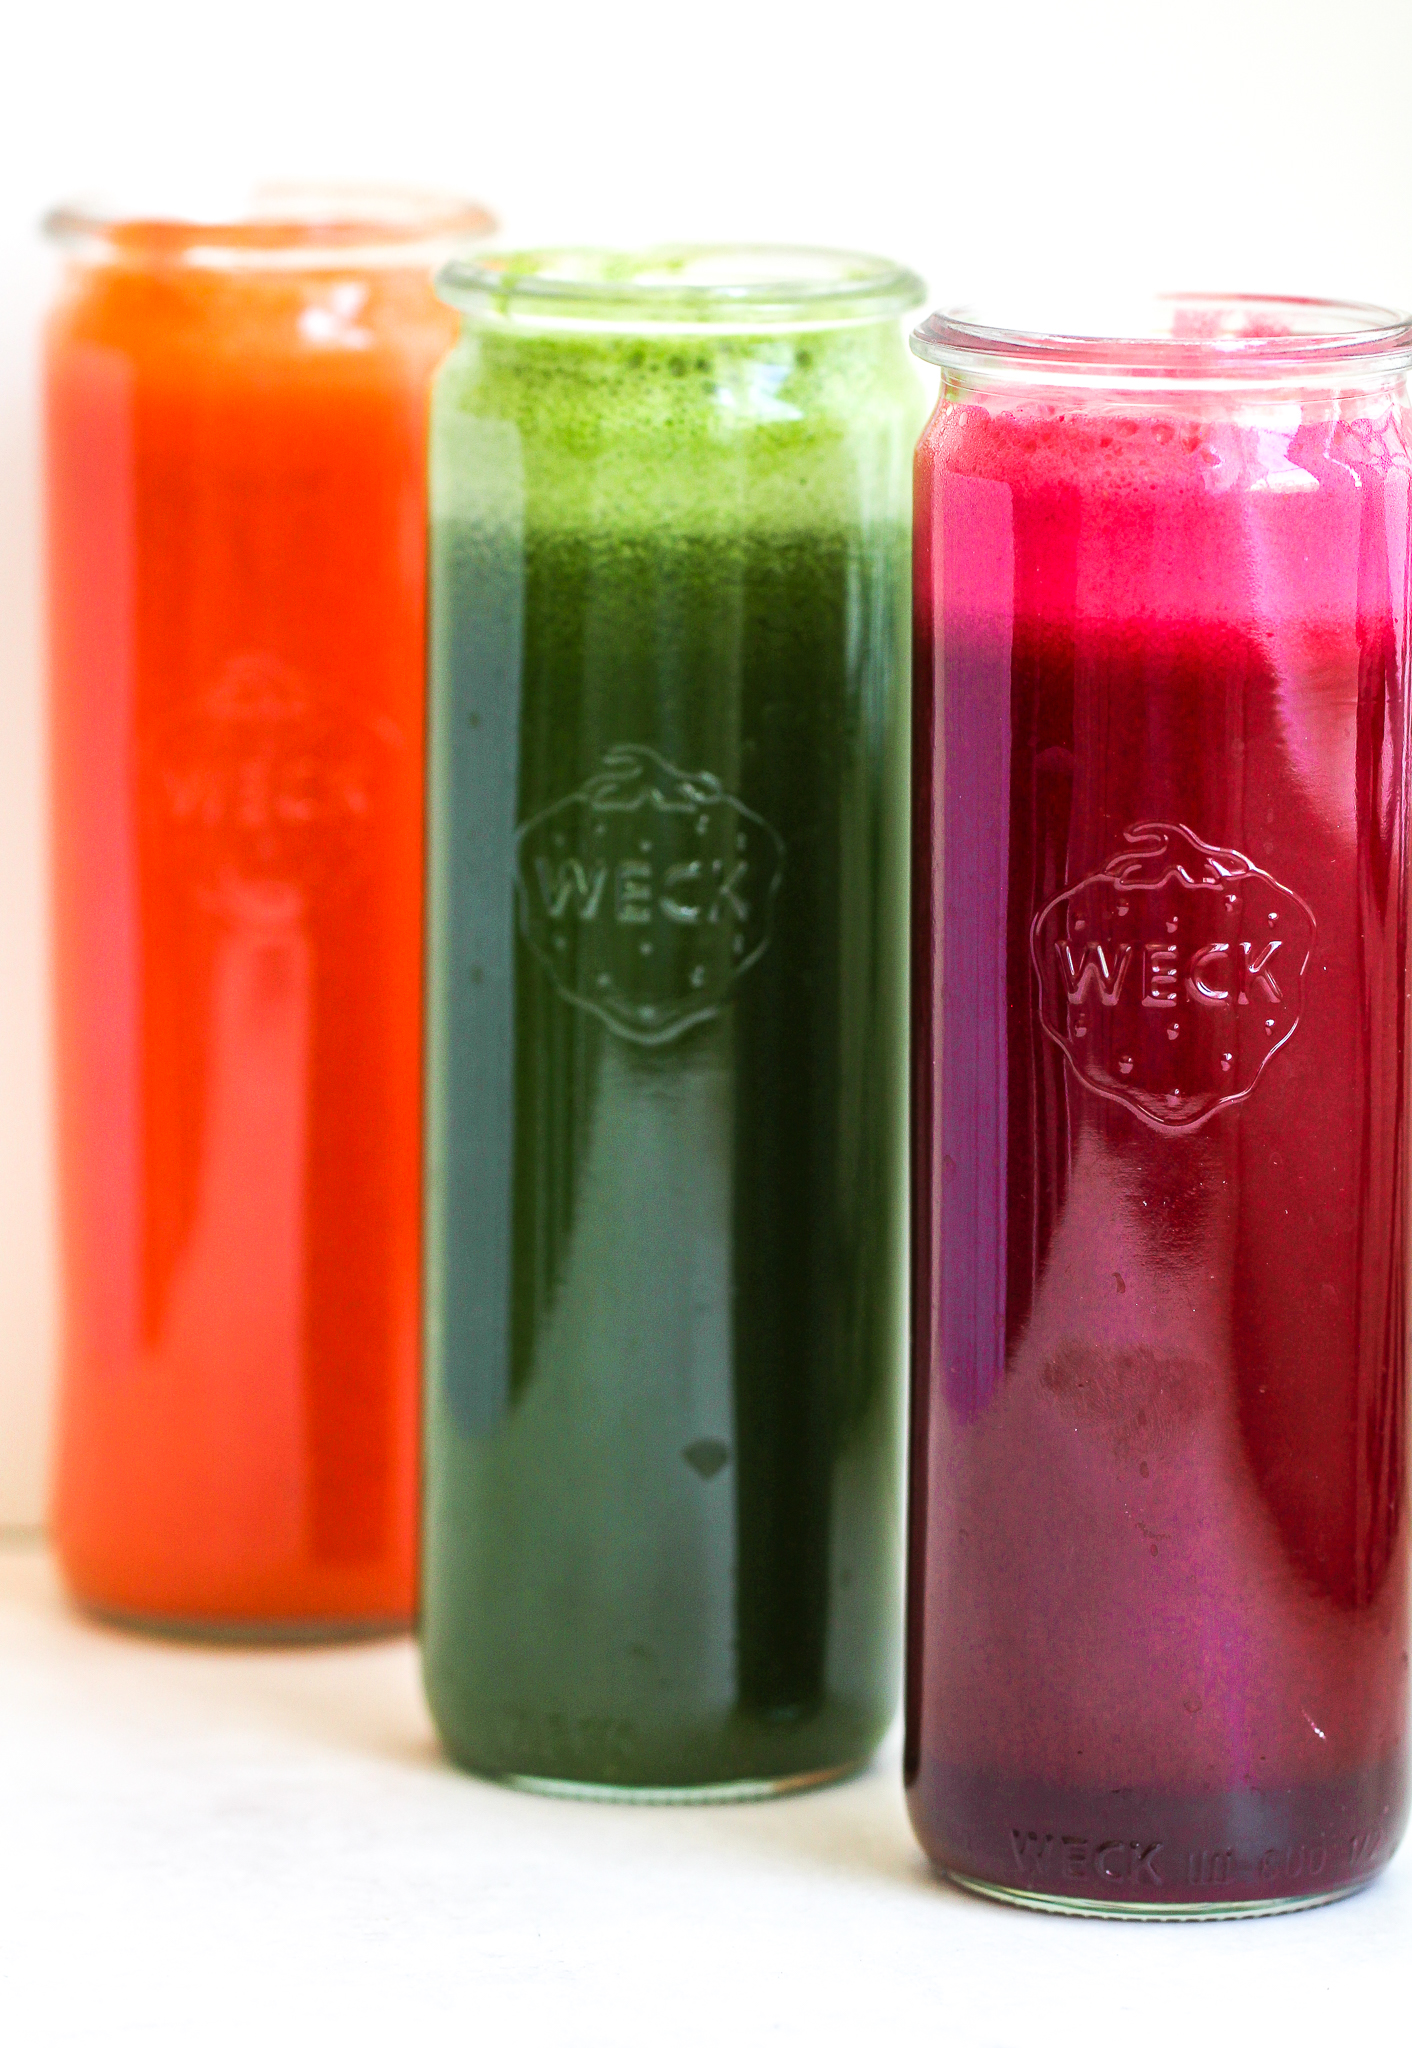 tall glass juice jars filled with 3 immune boosting juices